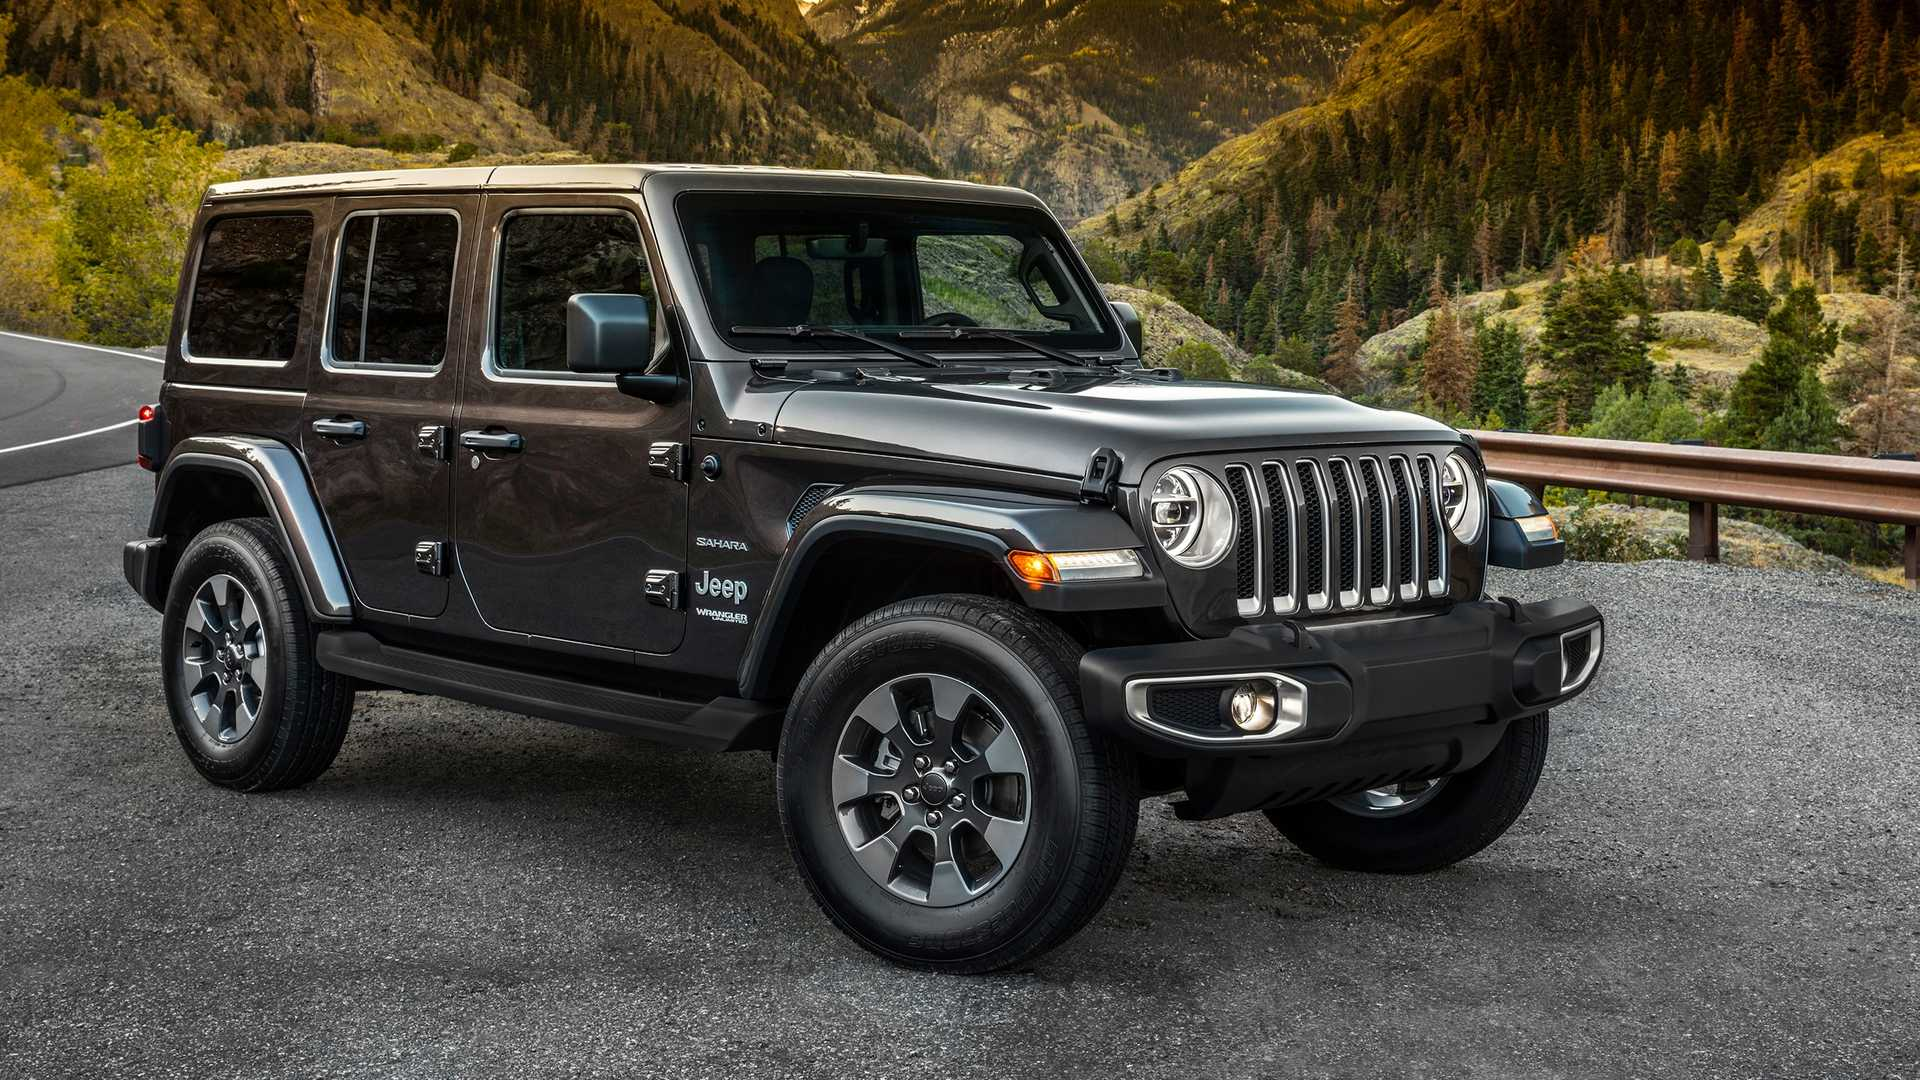 64 The When Will 2020 Jeep Wrangler Be Available Photos with When Will 2020 Jeep Wrangler Be Available